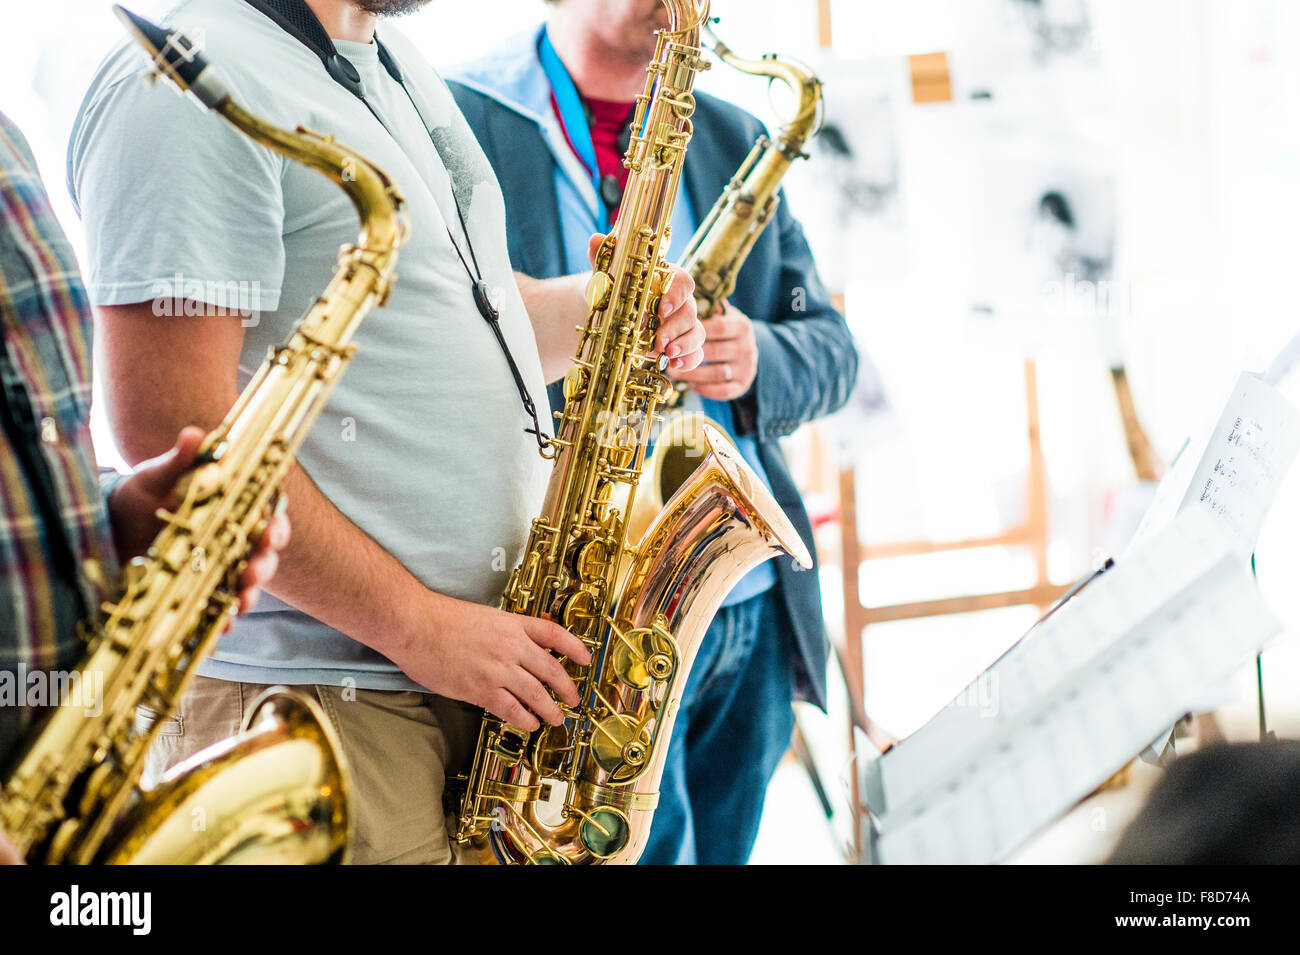 Jazz music : three musican playing  saxophones in a group - Stock Image